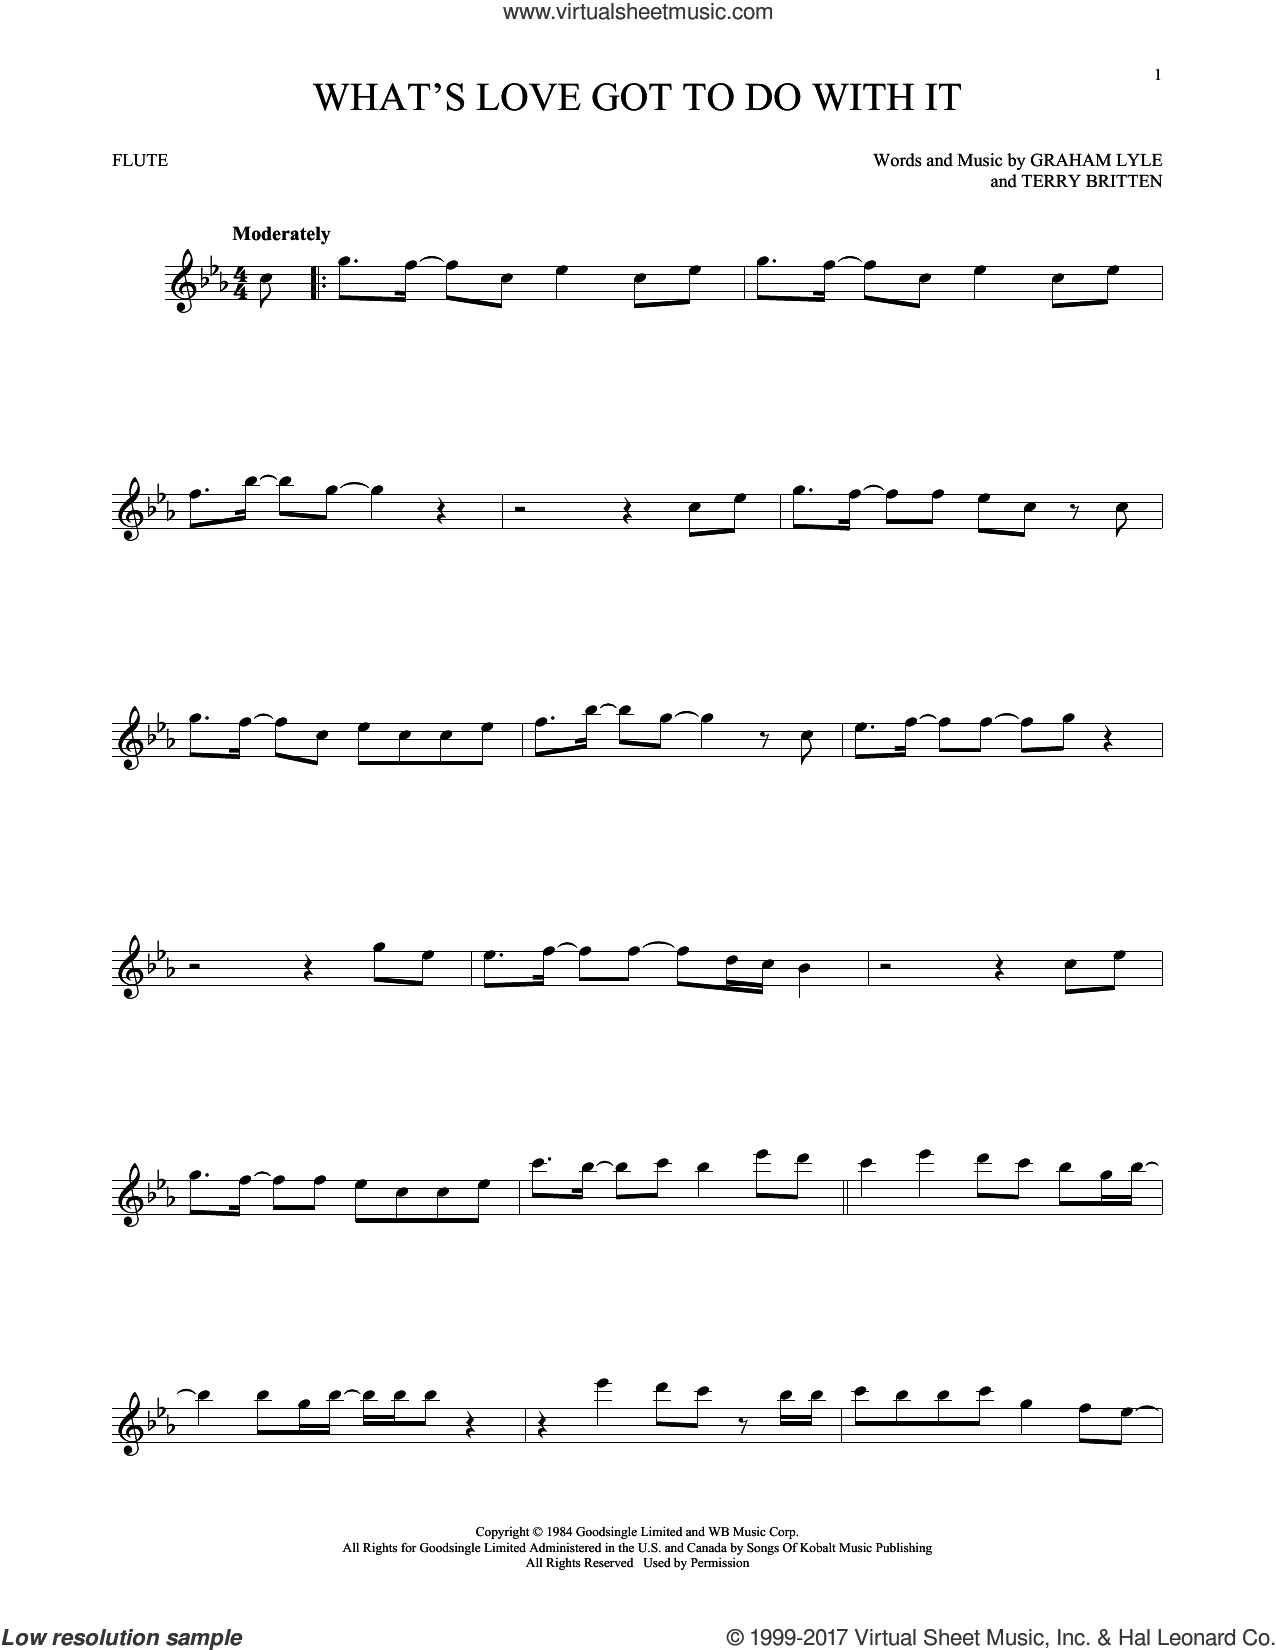 What's Love Got To Do With It sheet music for flute solo by Tina Turner, Graham Lyle and Terry Britten, intermediate skill level